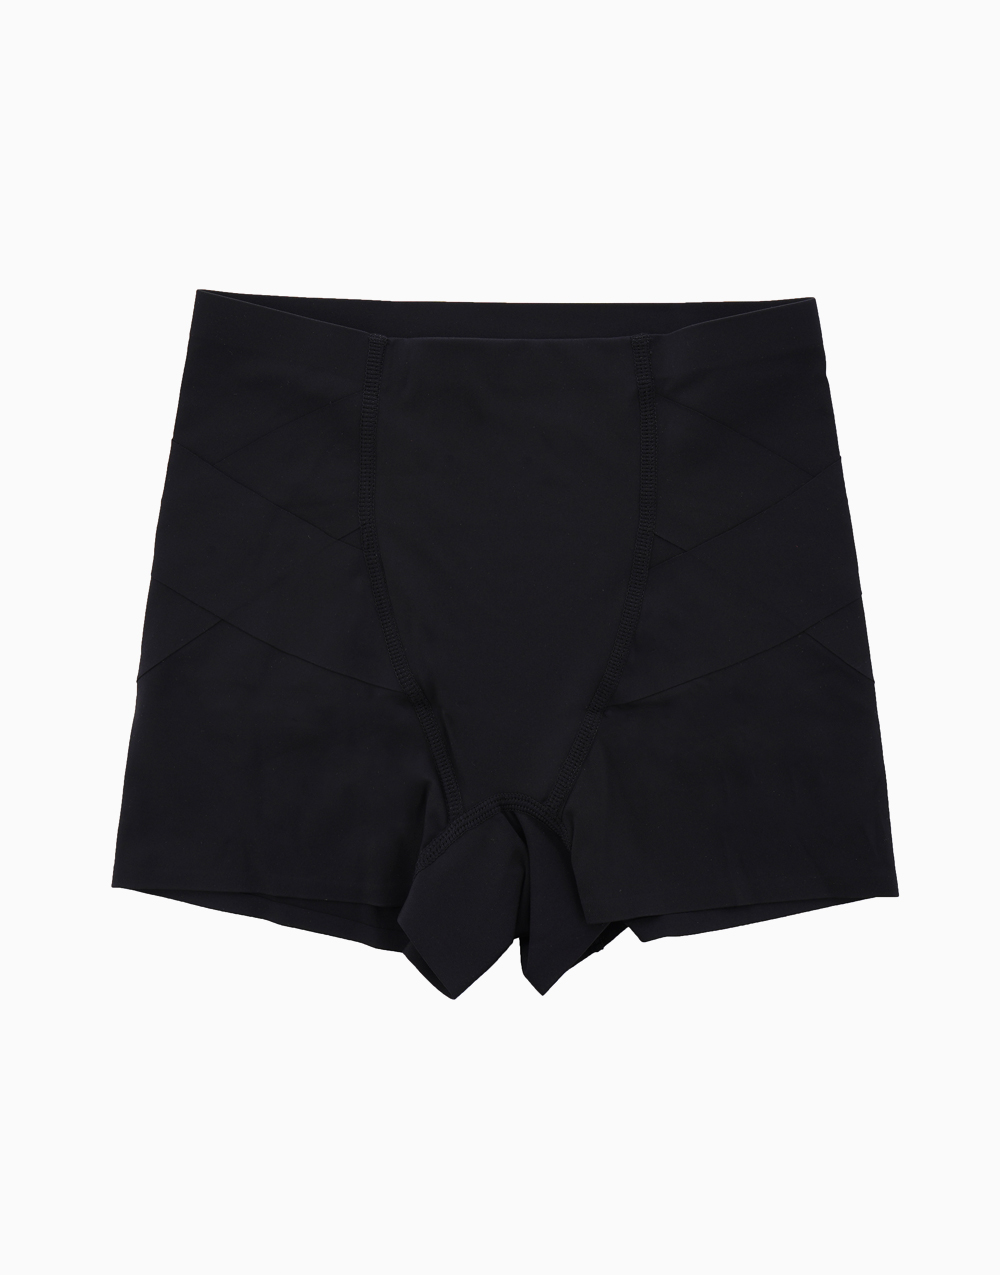 Booty Trainer Butt & Hip Compression Shorts in Black by Jellyfit | Medium